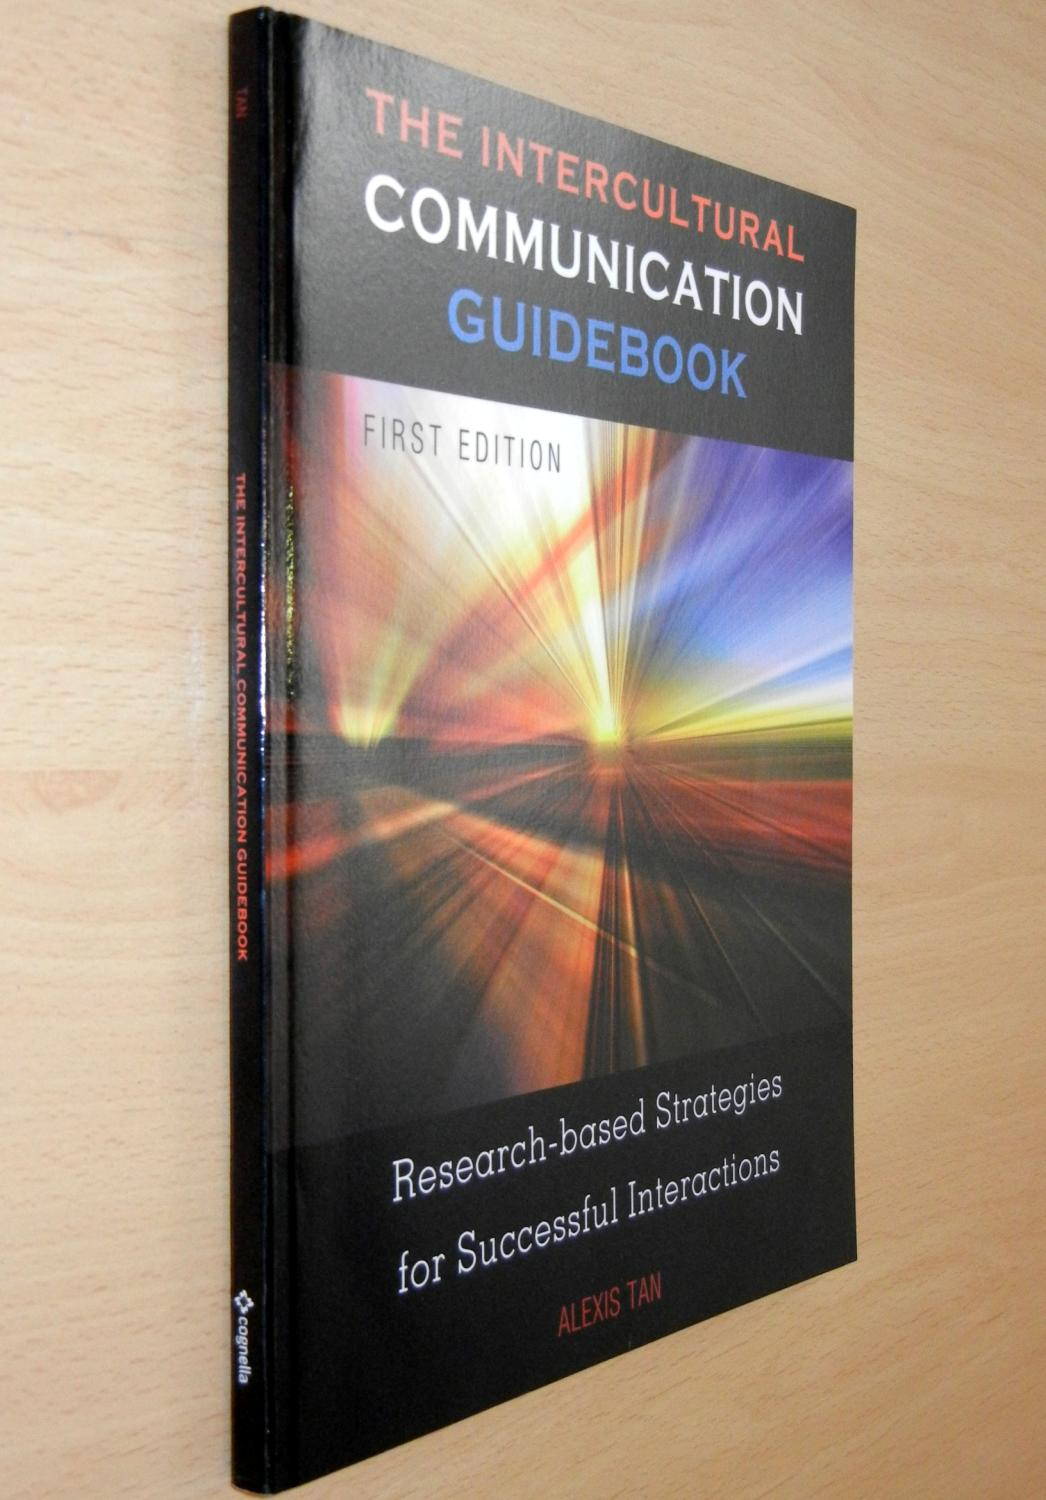 The Intercultural Communication Guidebook: